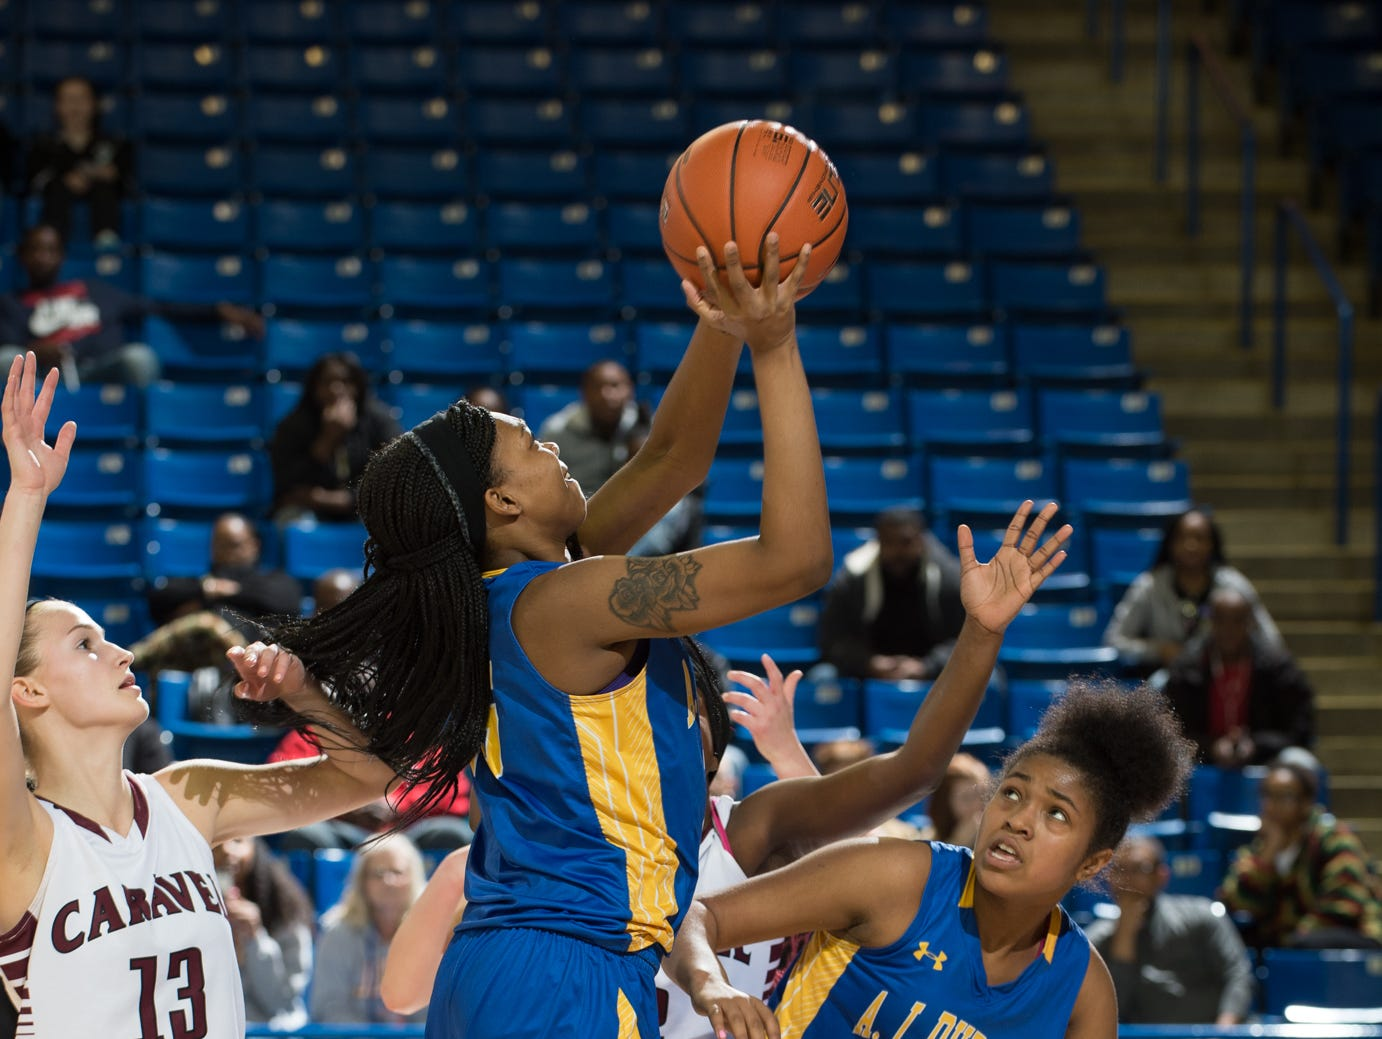 A.I. duPont's Al'kirah Wilson (15) goes for a shot in the quarterfinals of DIAA Girls Basketball Tournament at the University of Delaware against Caravel.